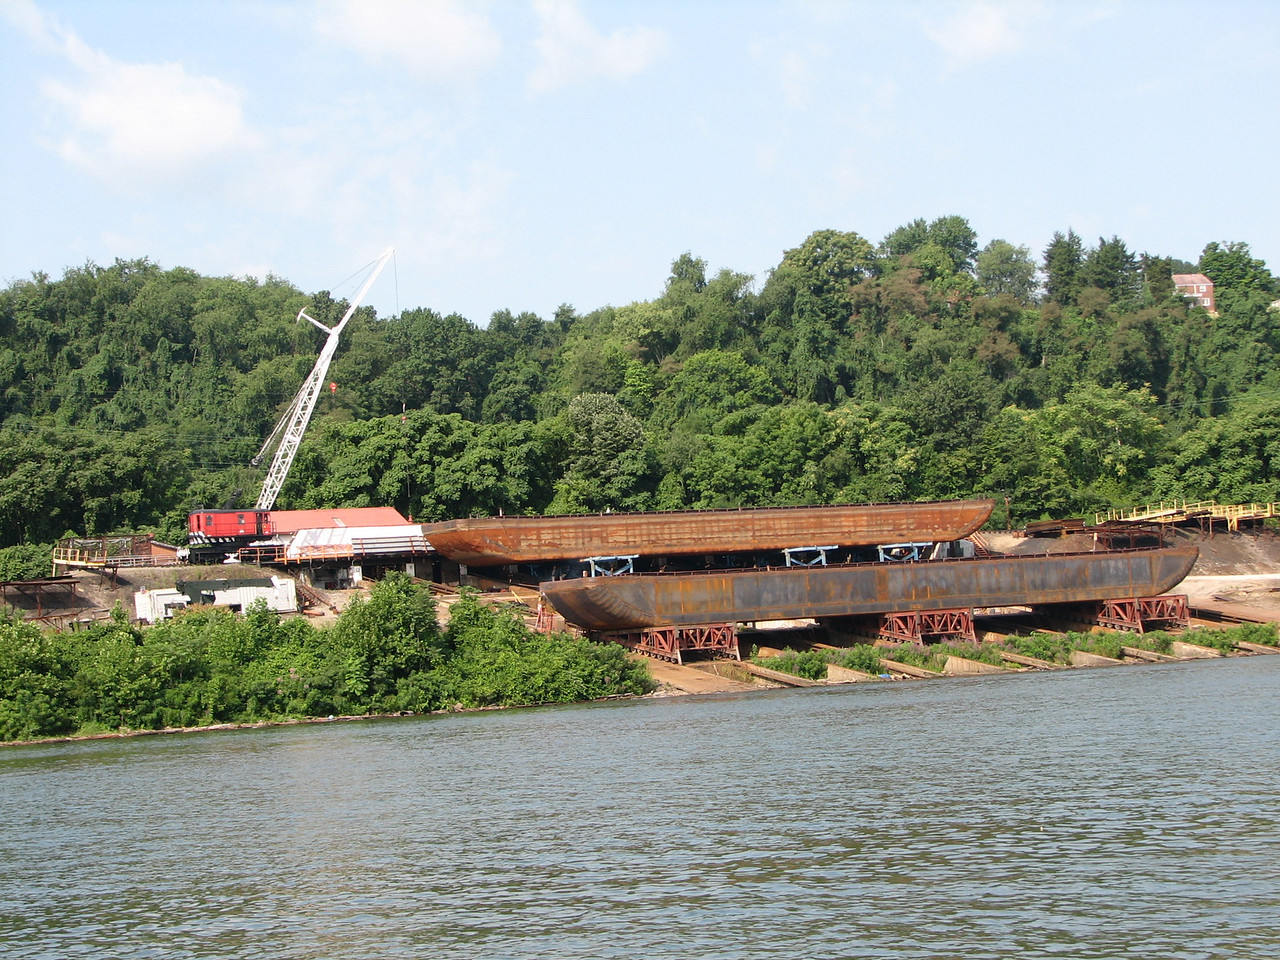 Dry dock for constructing new barges.